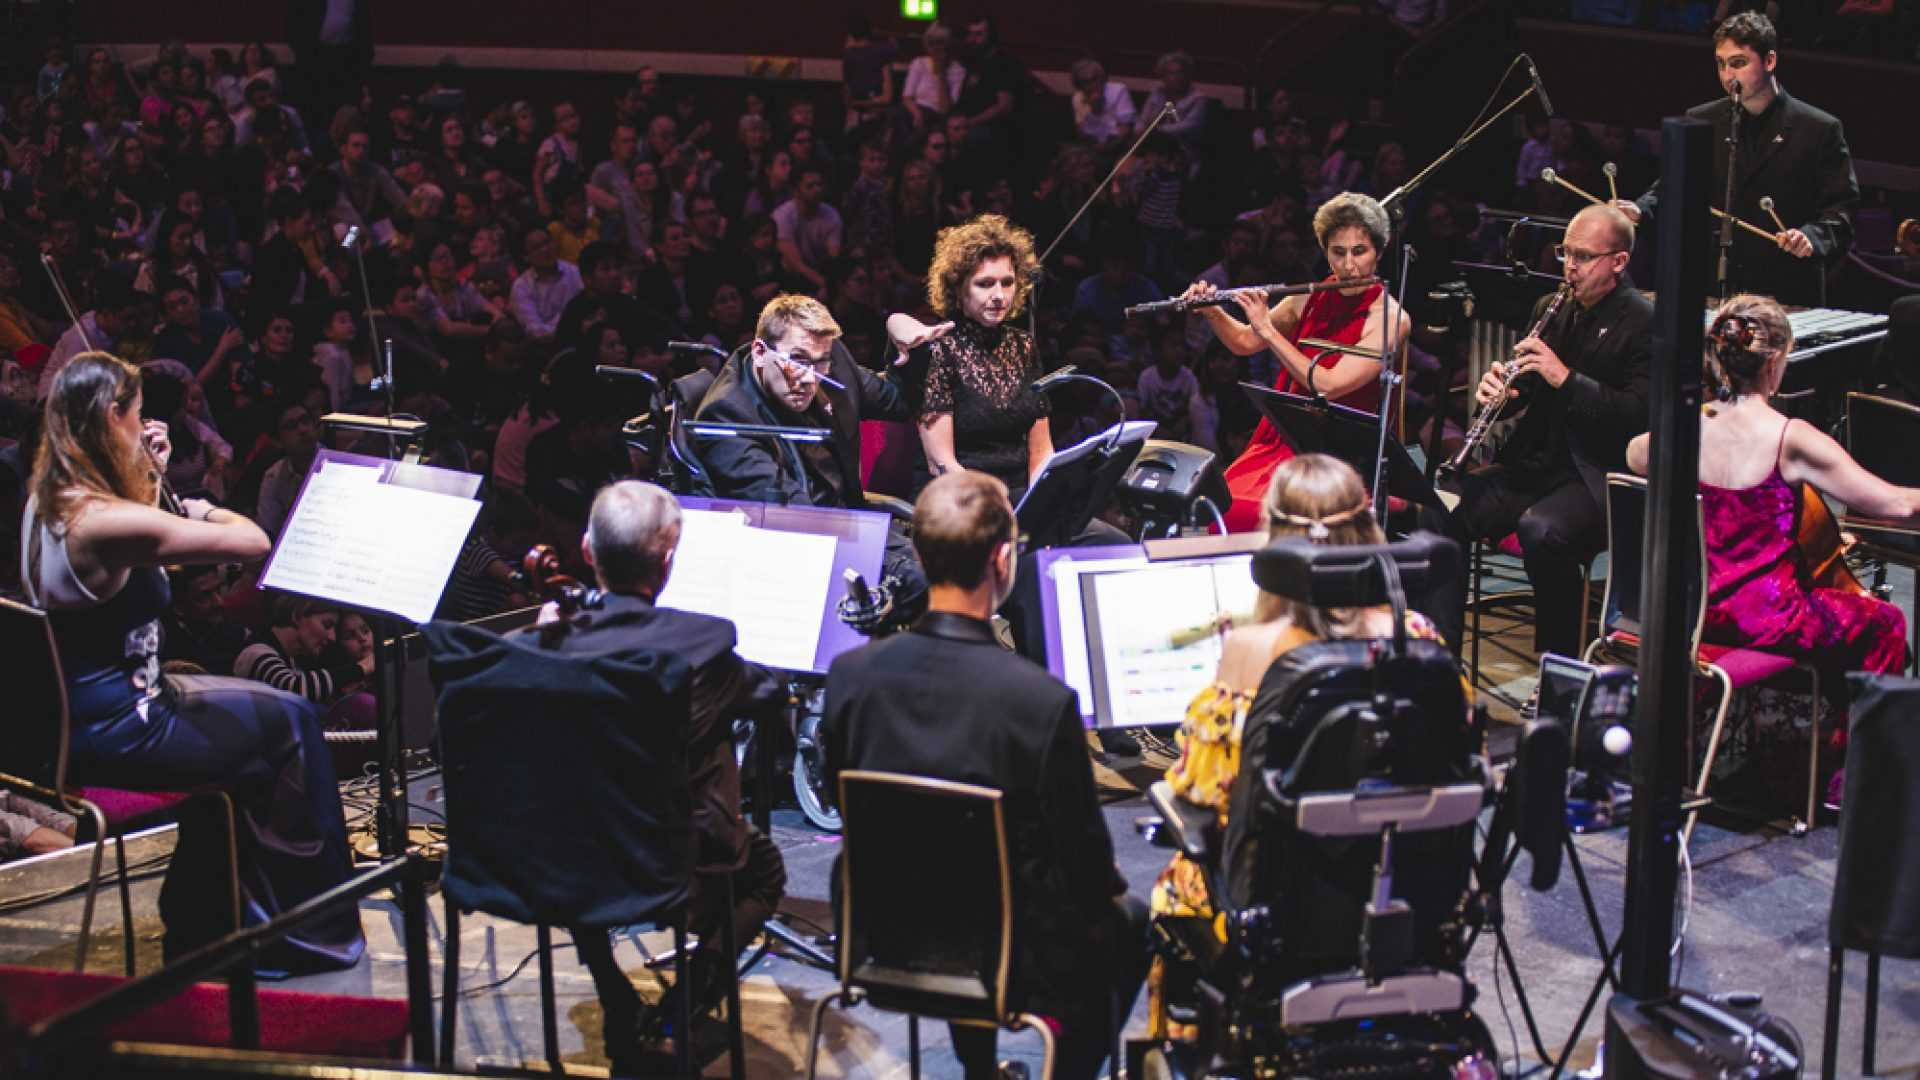 BSO Resound who are nominated for 2 royal philharmonic society awards.